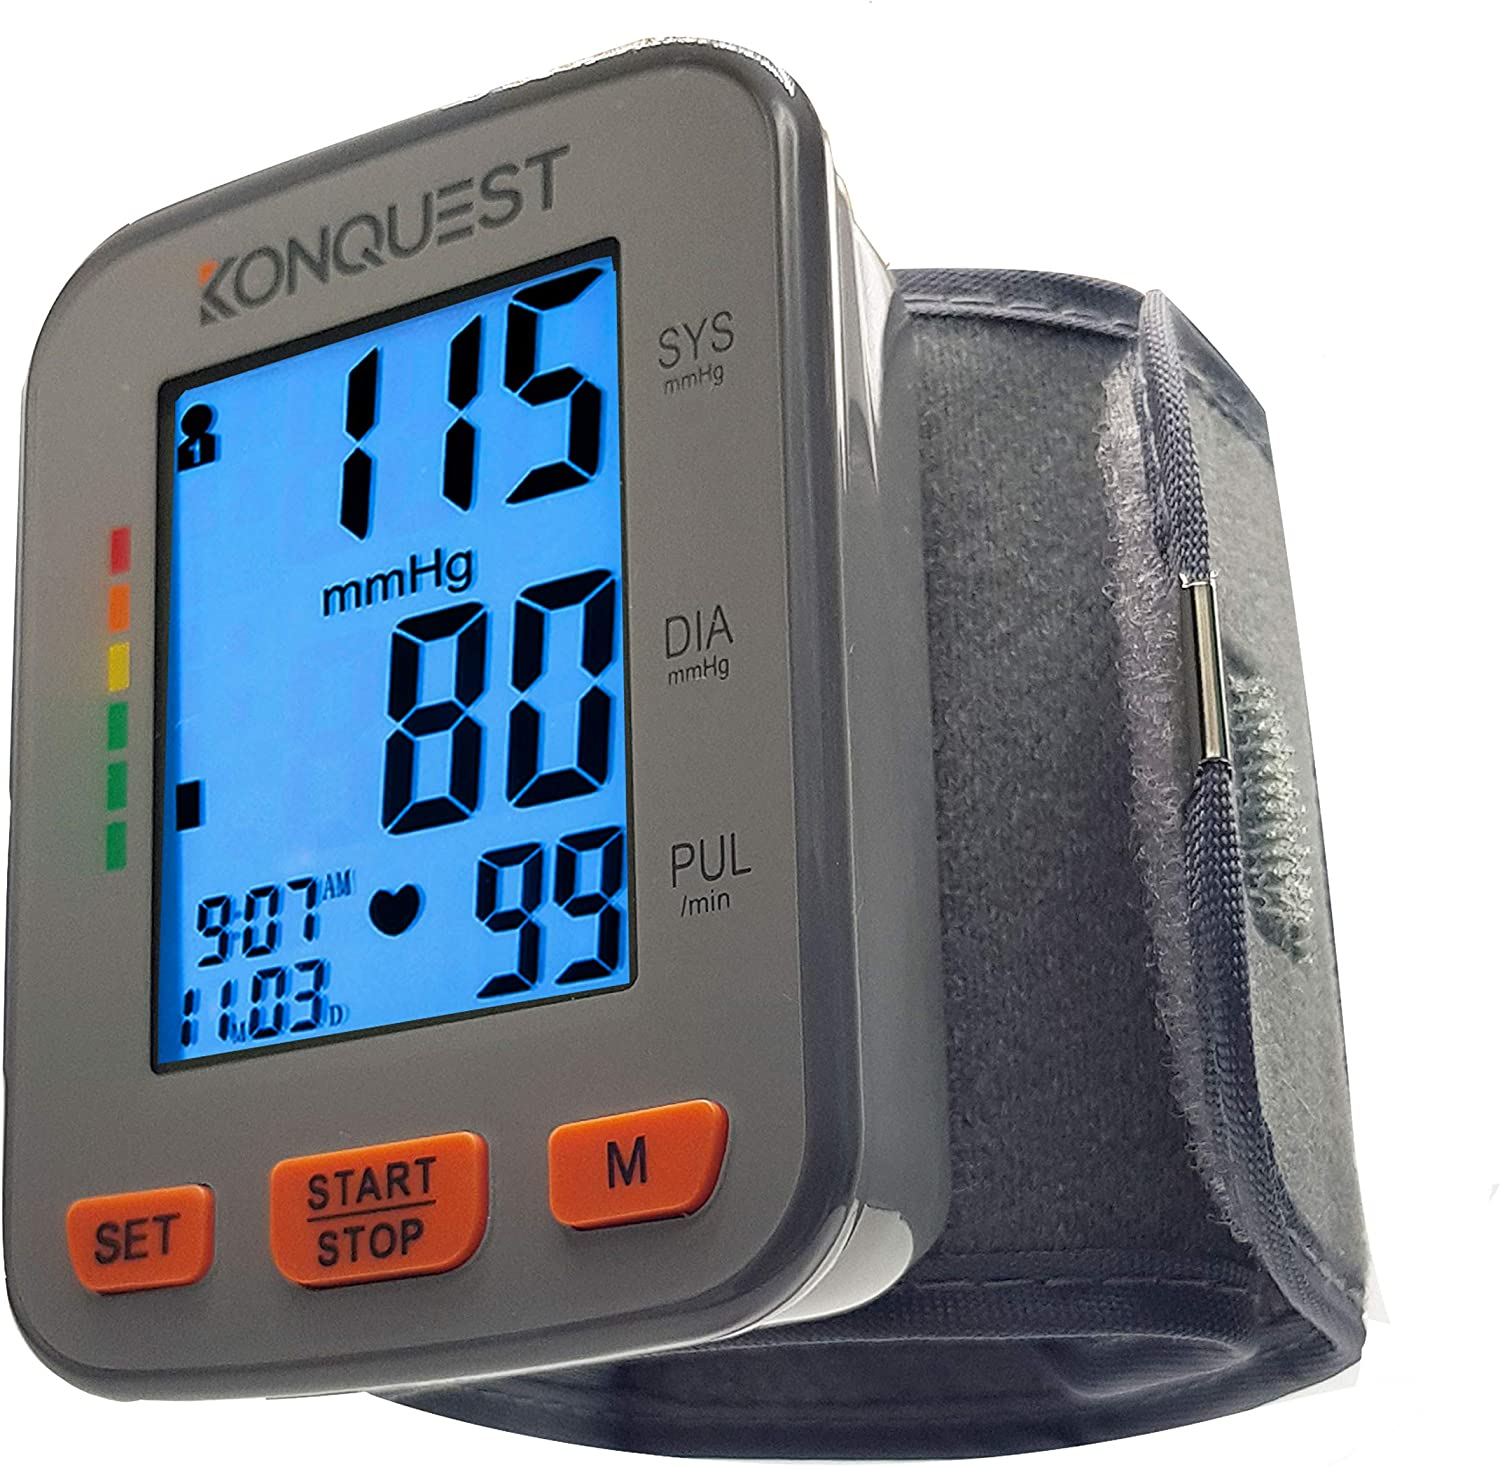 Konquest KBP-2910W Automatic Wrist Blood Pressure Monitor - Accurate - Adjustable Cuff, Large Screen Display, Portable Case - Irregular Heartbeat & Hypertension Detector